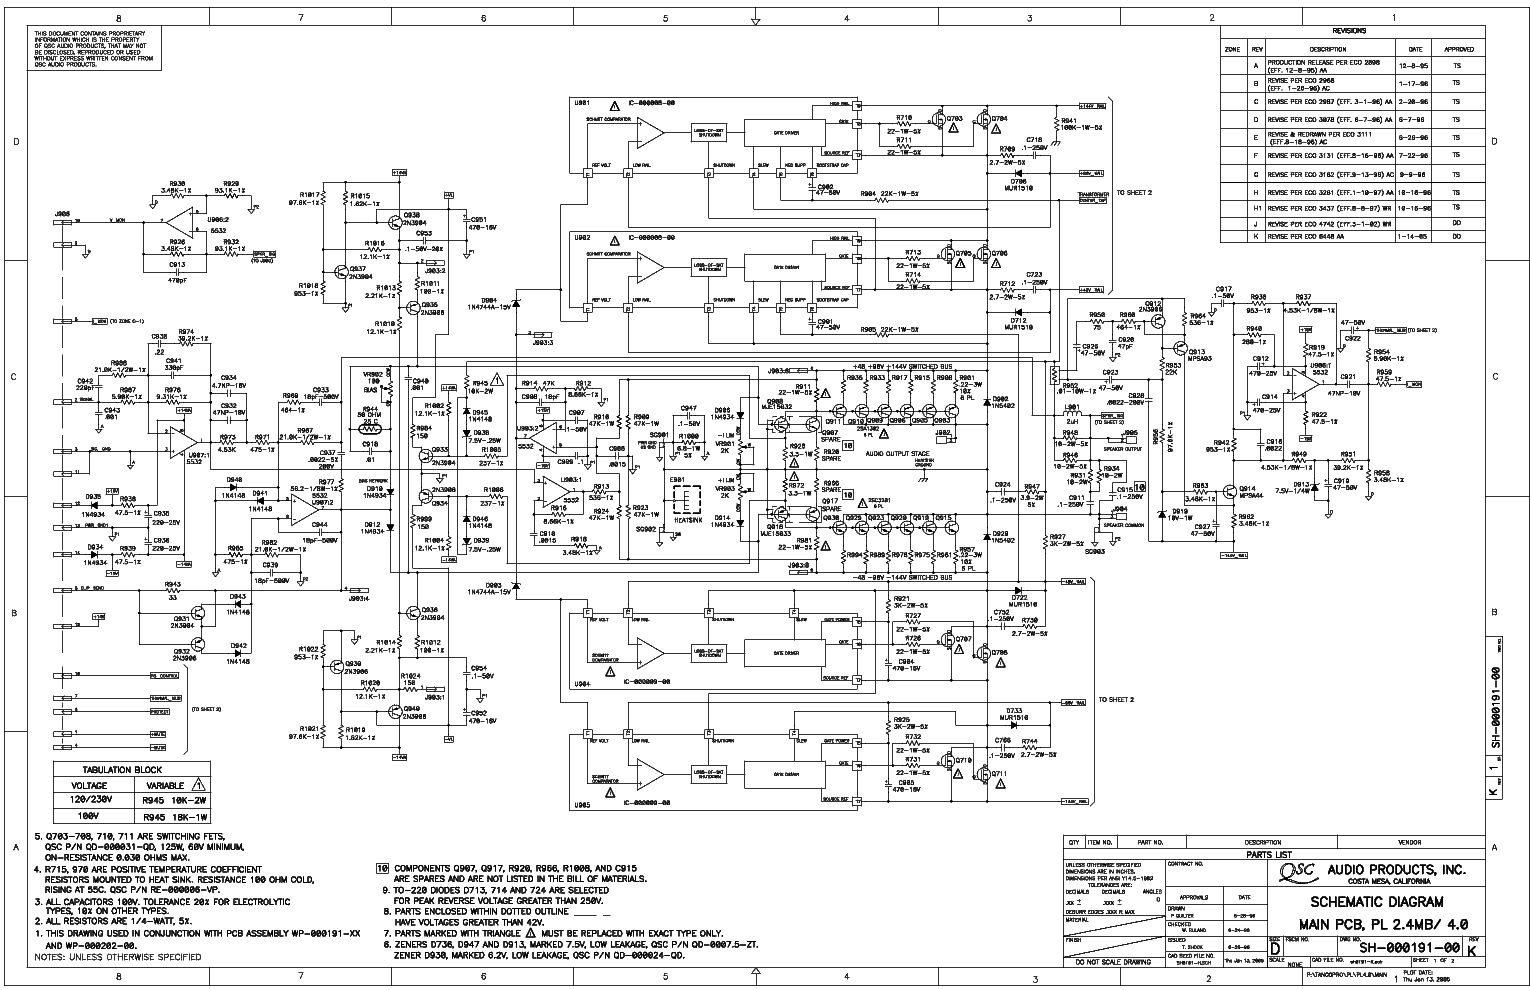 qsc_pl38x.pdf_1 Qsc Plx Schematic Diagram on isa 300ti, pl340 power supply, gx 3 amplifier, k-12 ksub, 1400 power amp, k10 speaker, usa 900 amplifier,